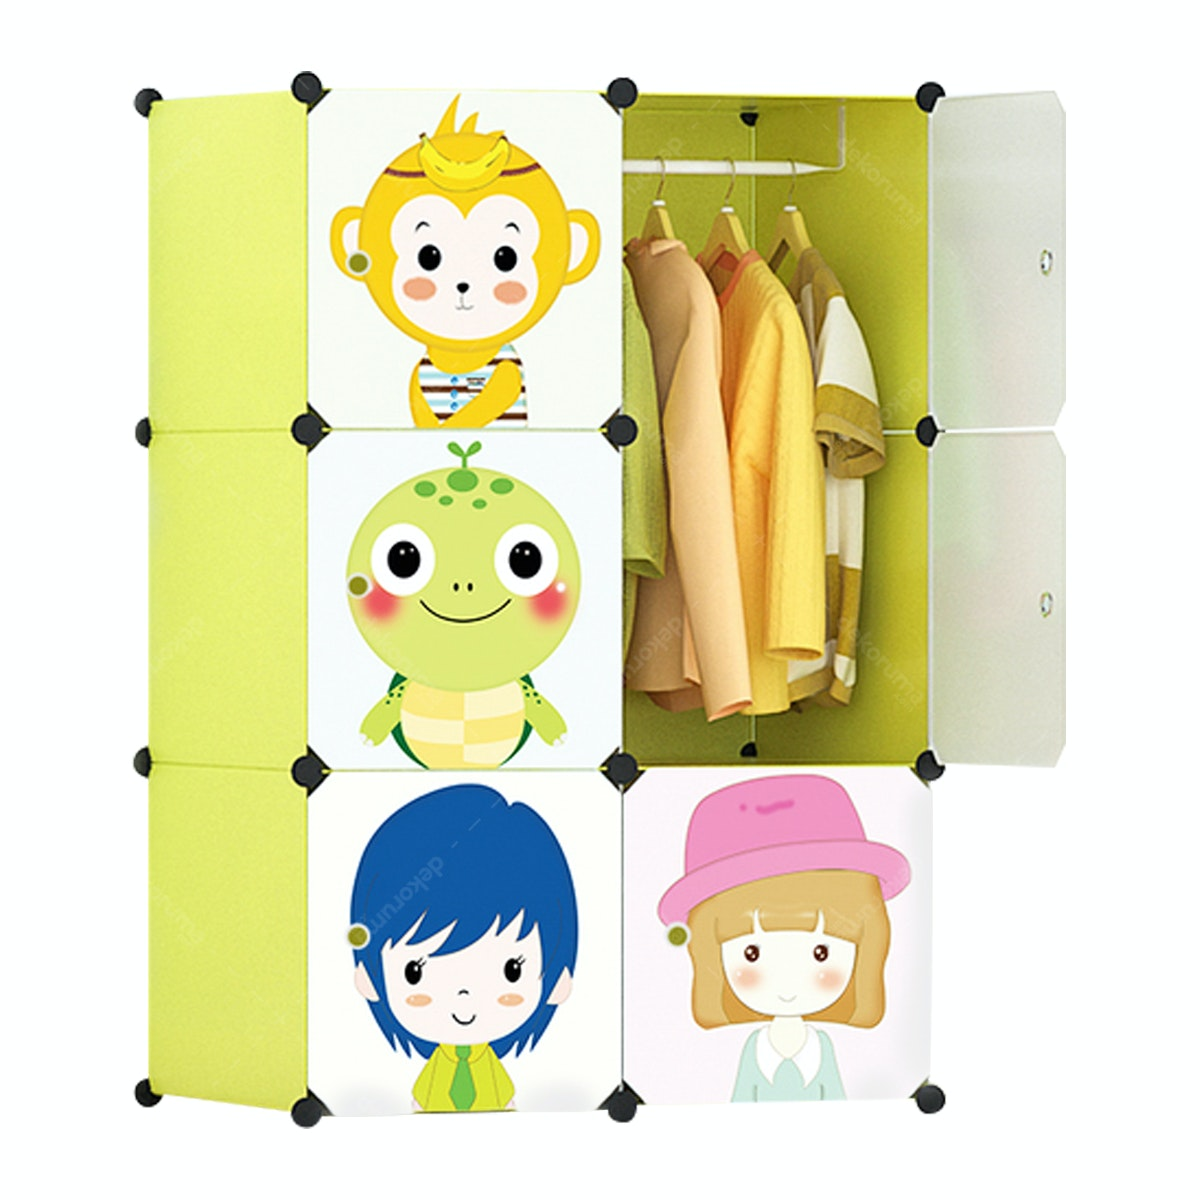 Souvenir Grosir Vintage Lemari Pakaian Portable Anak Animal Cartoon Yellow